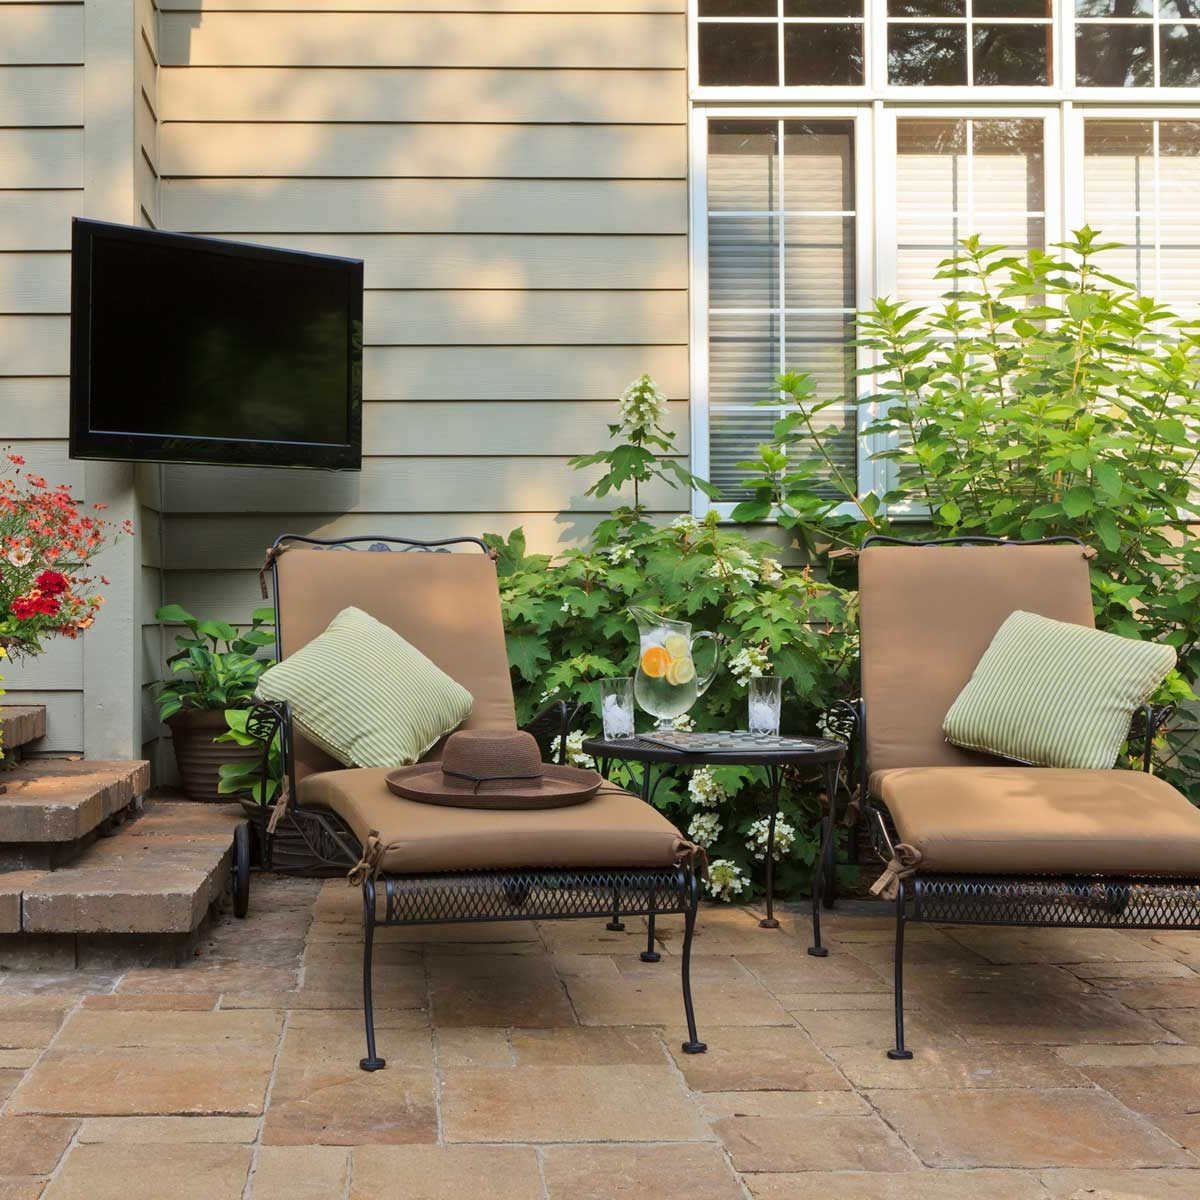 Patio with an outdoor TV